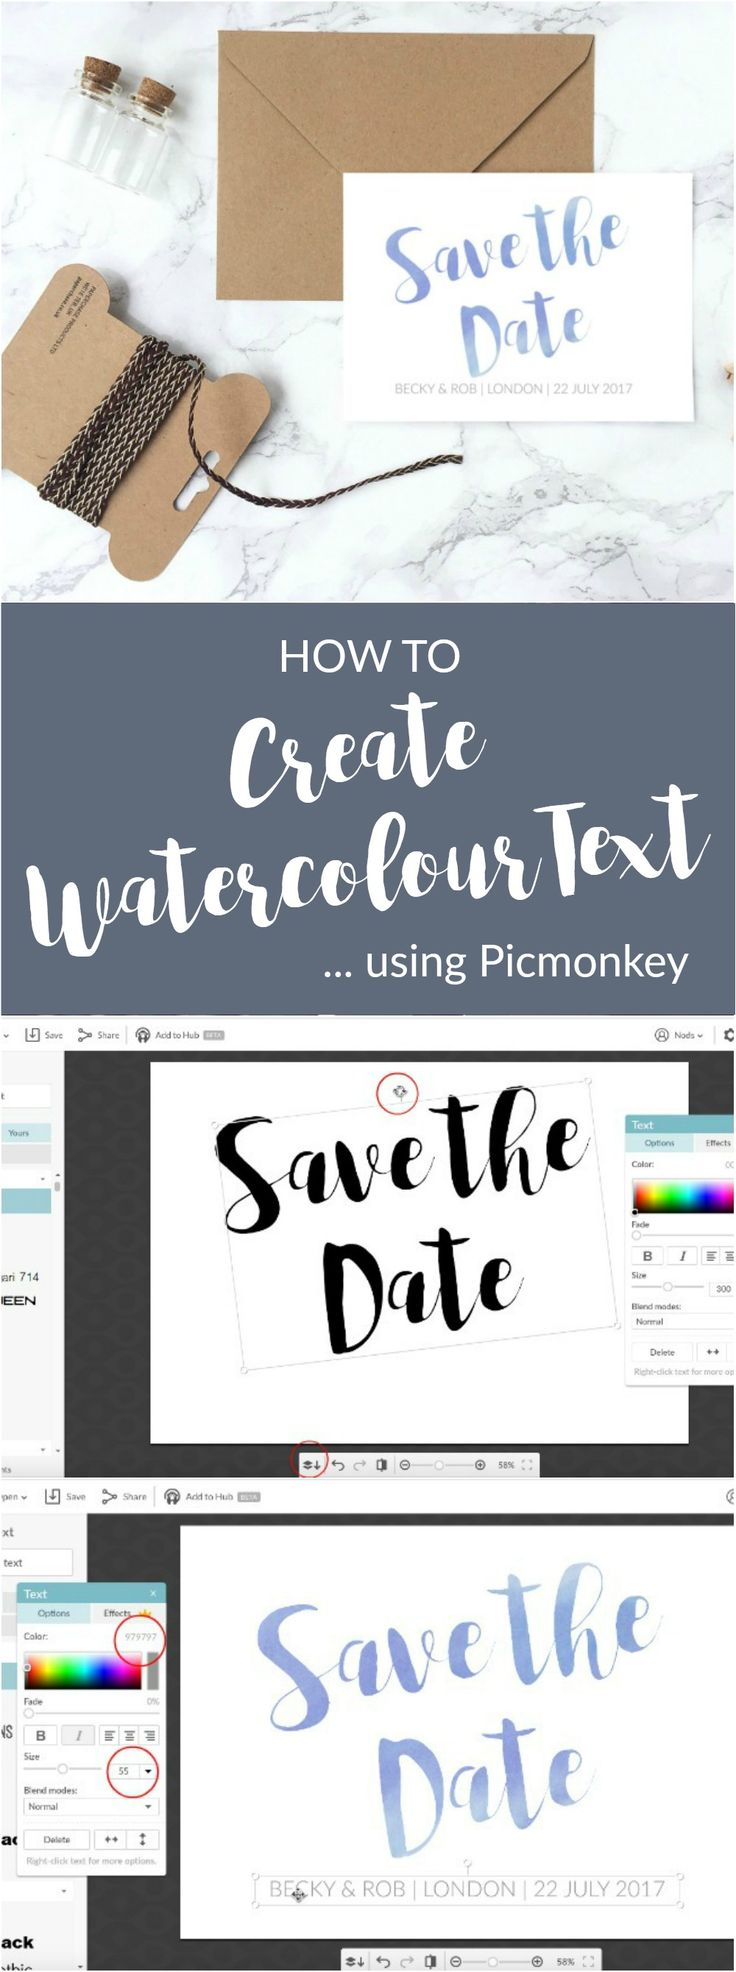 A quick and easy step-by-step tutorial on how to create Watercolour text for wedding invitations using Picmonkey